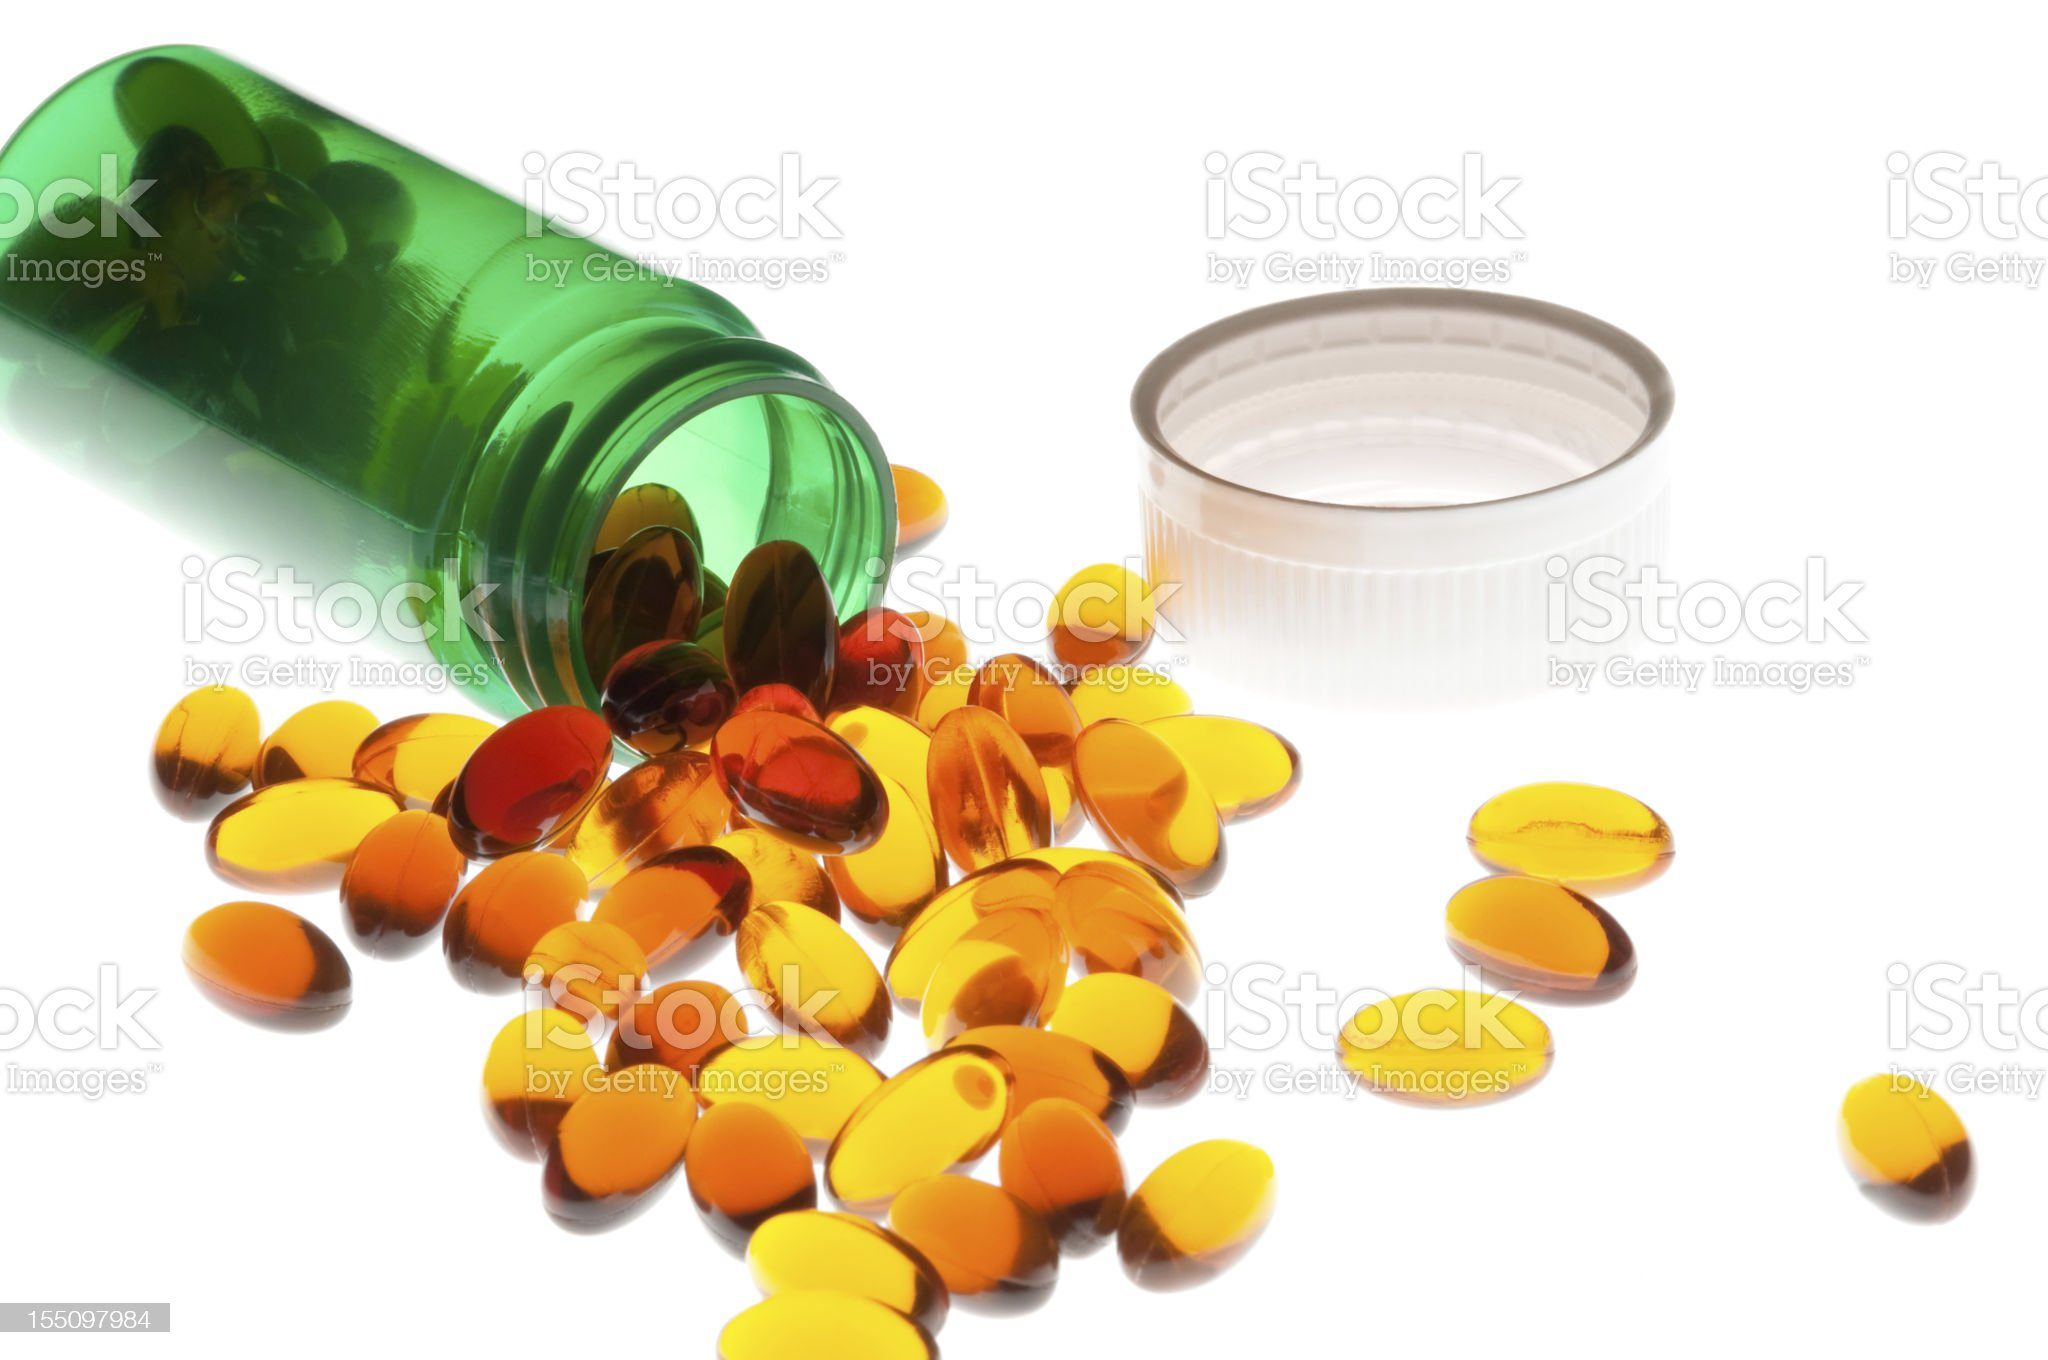 spilled amber colored vitamins royalty-free stock photo